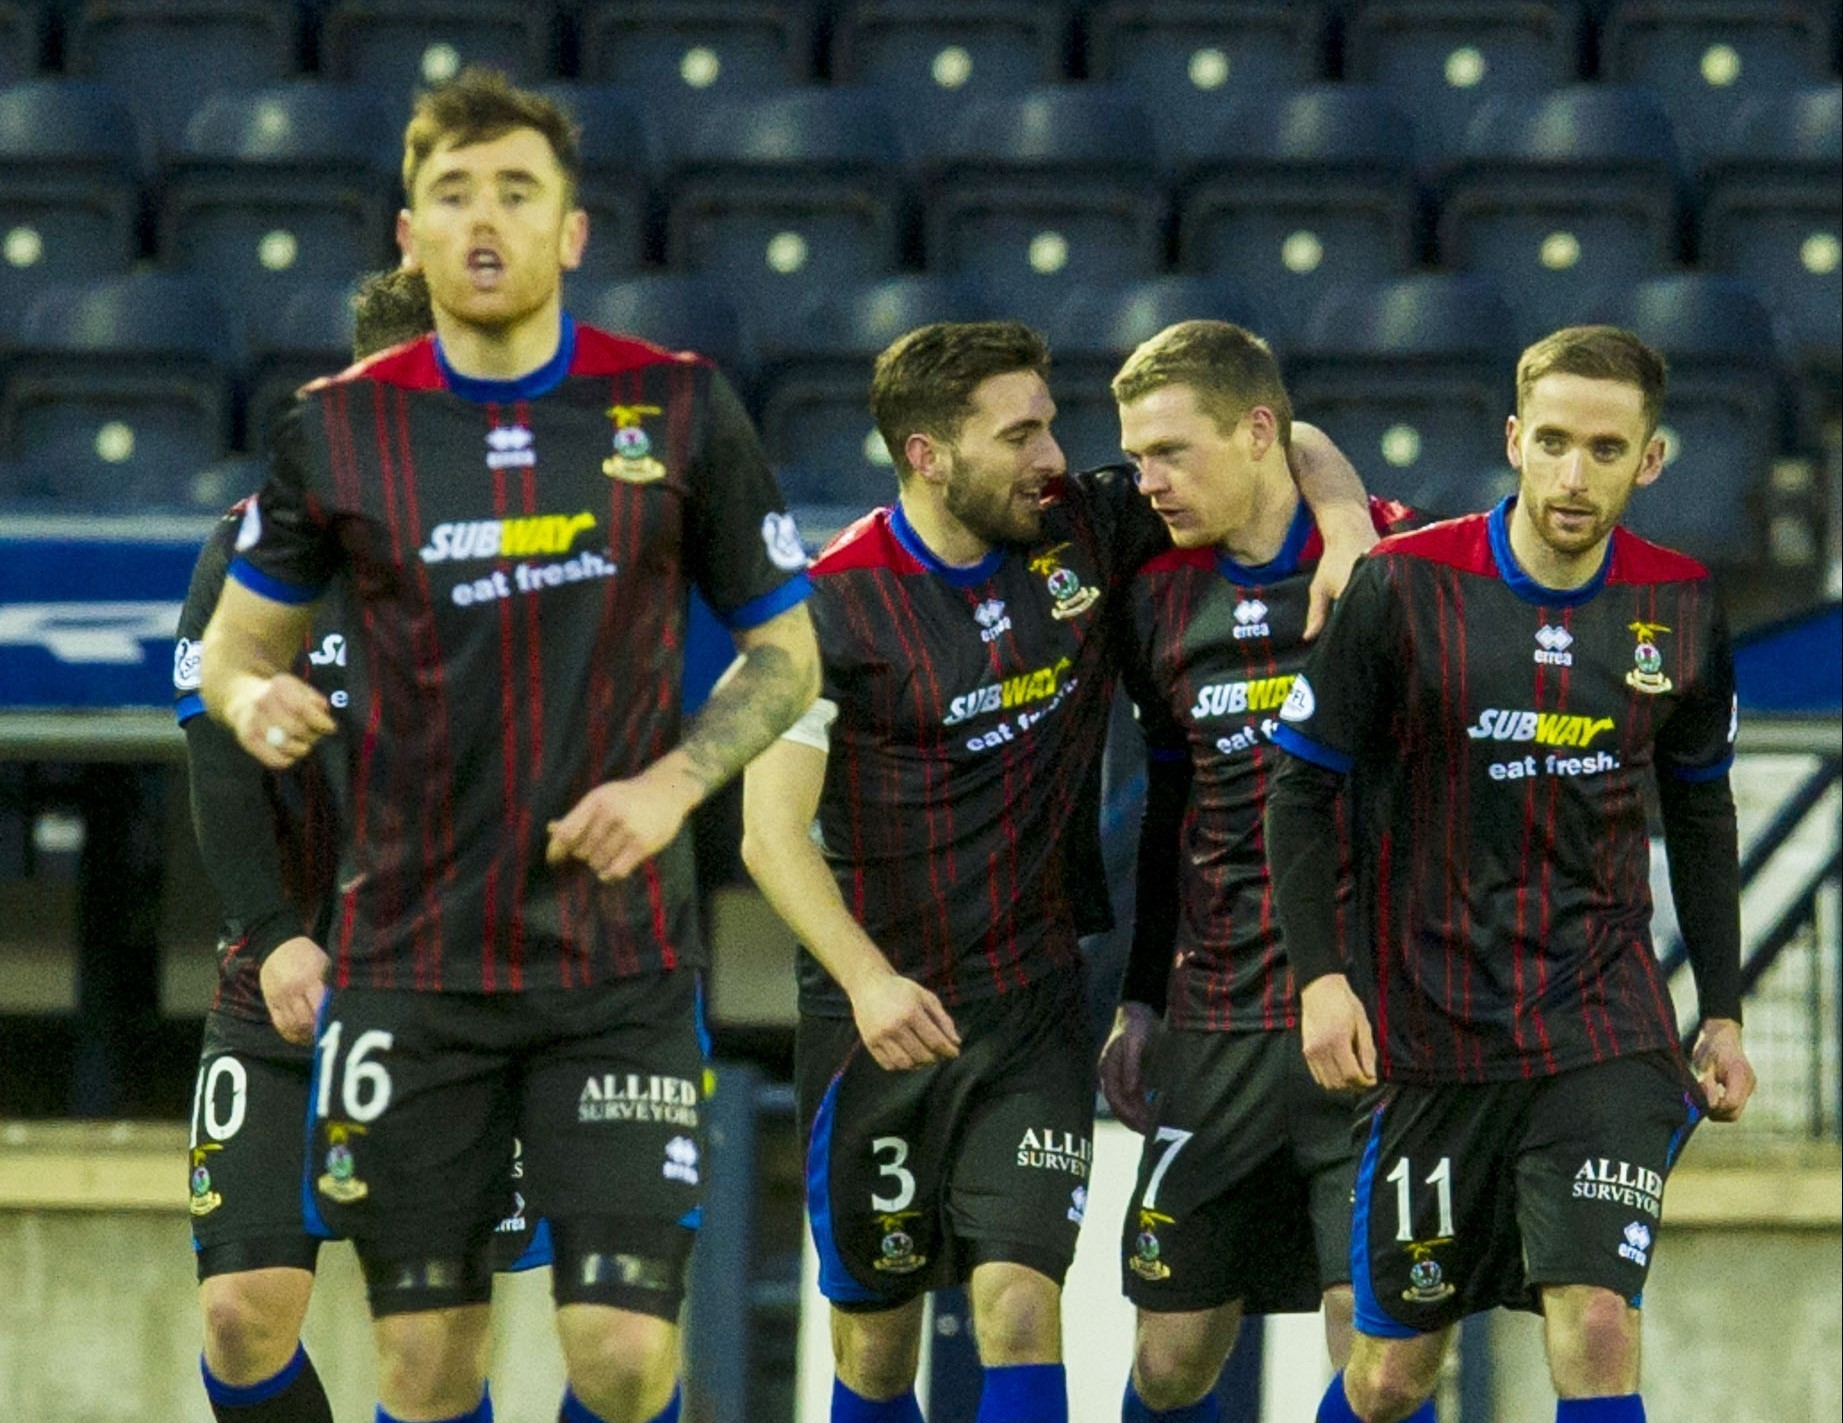 Caley Thistle celebrate turning the game round